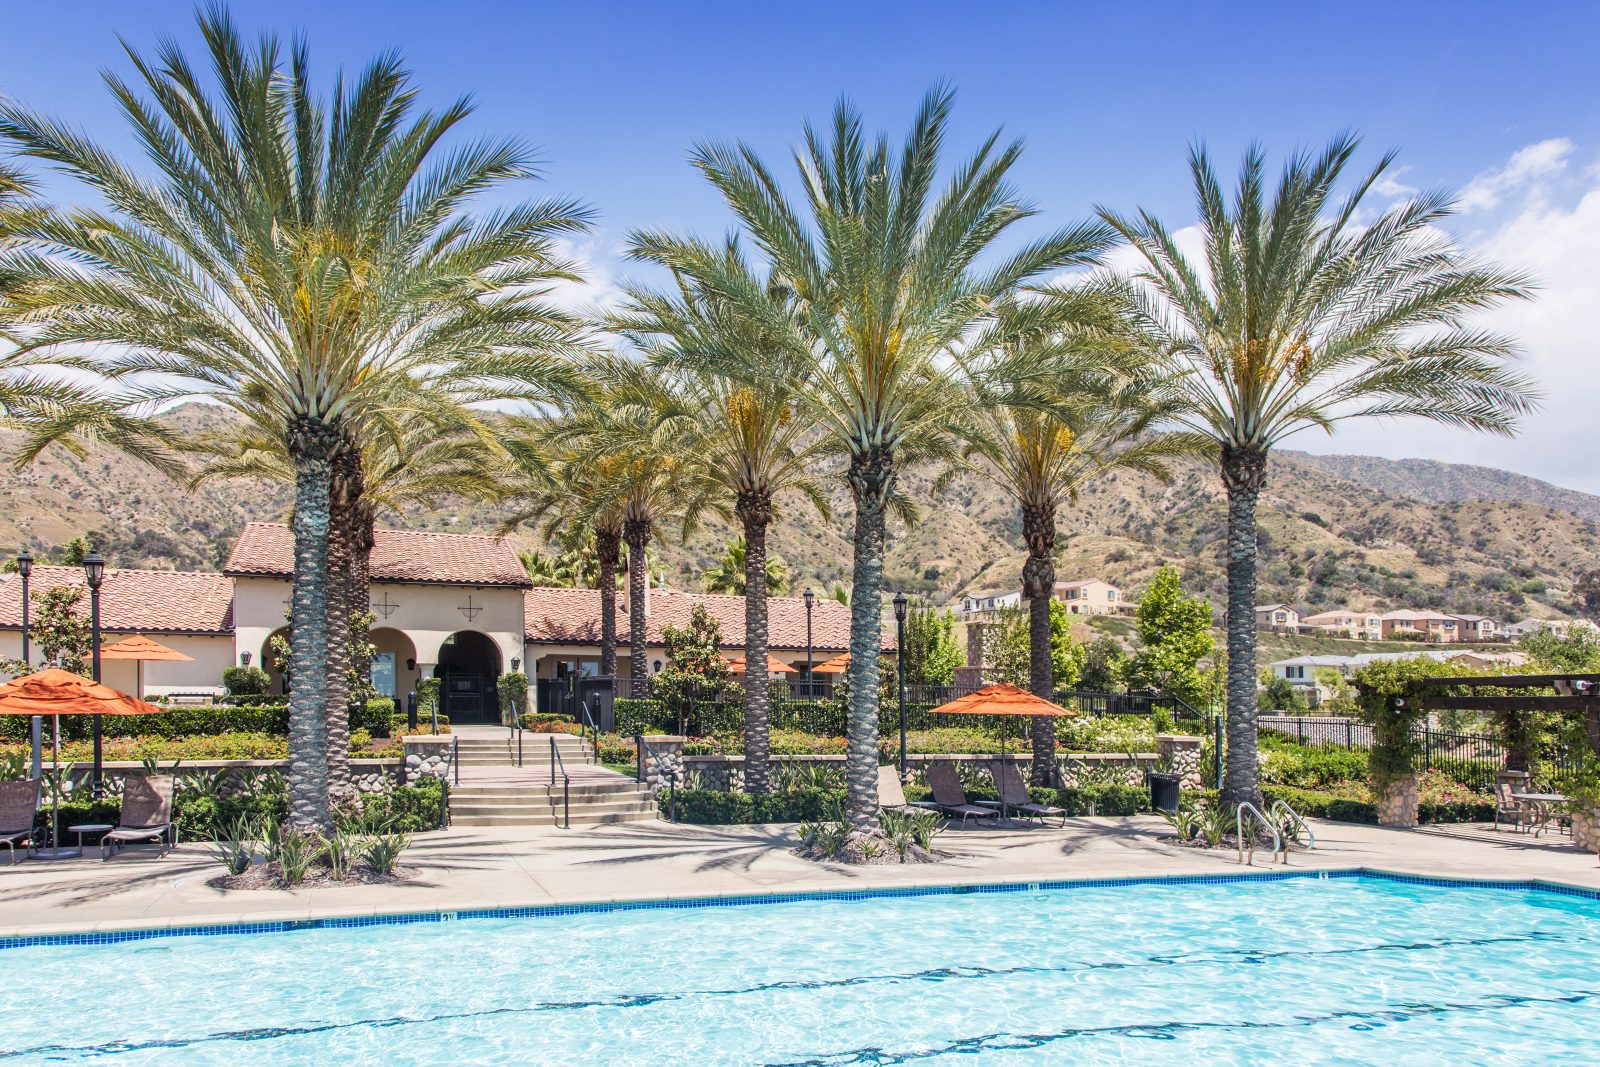 New Townhomes for Sale in Azusa